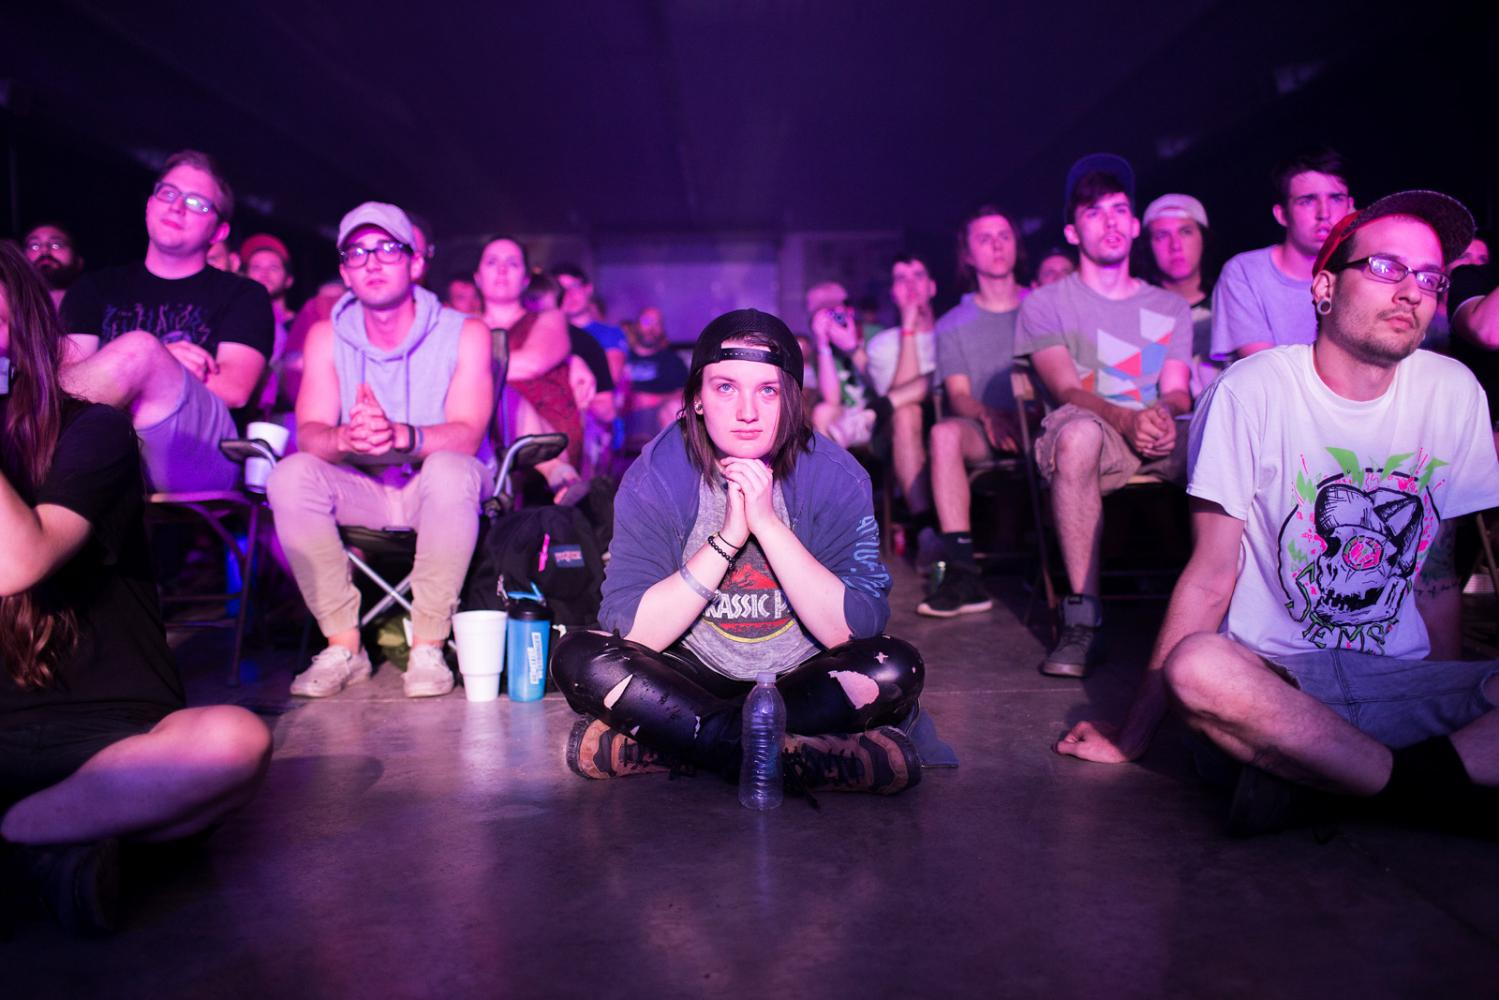 Landon Zettelmier from Champaign, Ill. watches as Dave Bazan performs at Audiofeed Festival in Urbana, Illinois on Saturday, July 1, 2017. Zettelmier said they came to Christ in a mosh pit at Audiofeed festival in 2015, and came out as transgender at Audiofeed in 2016. © 2017 KC McGinnis